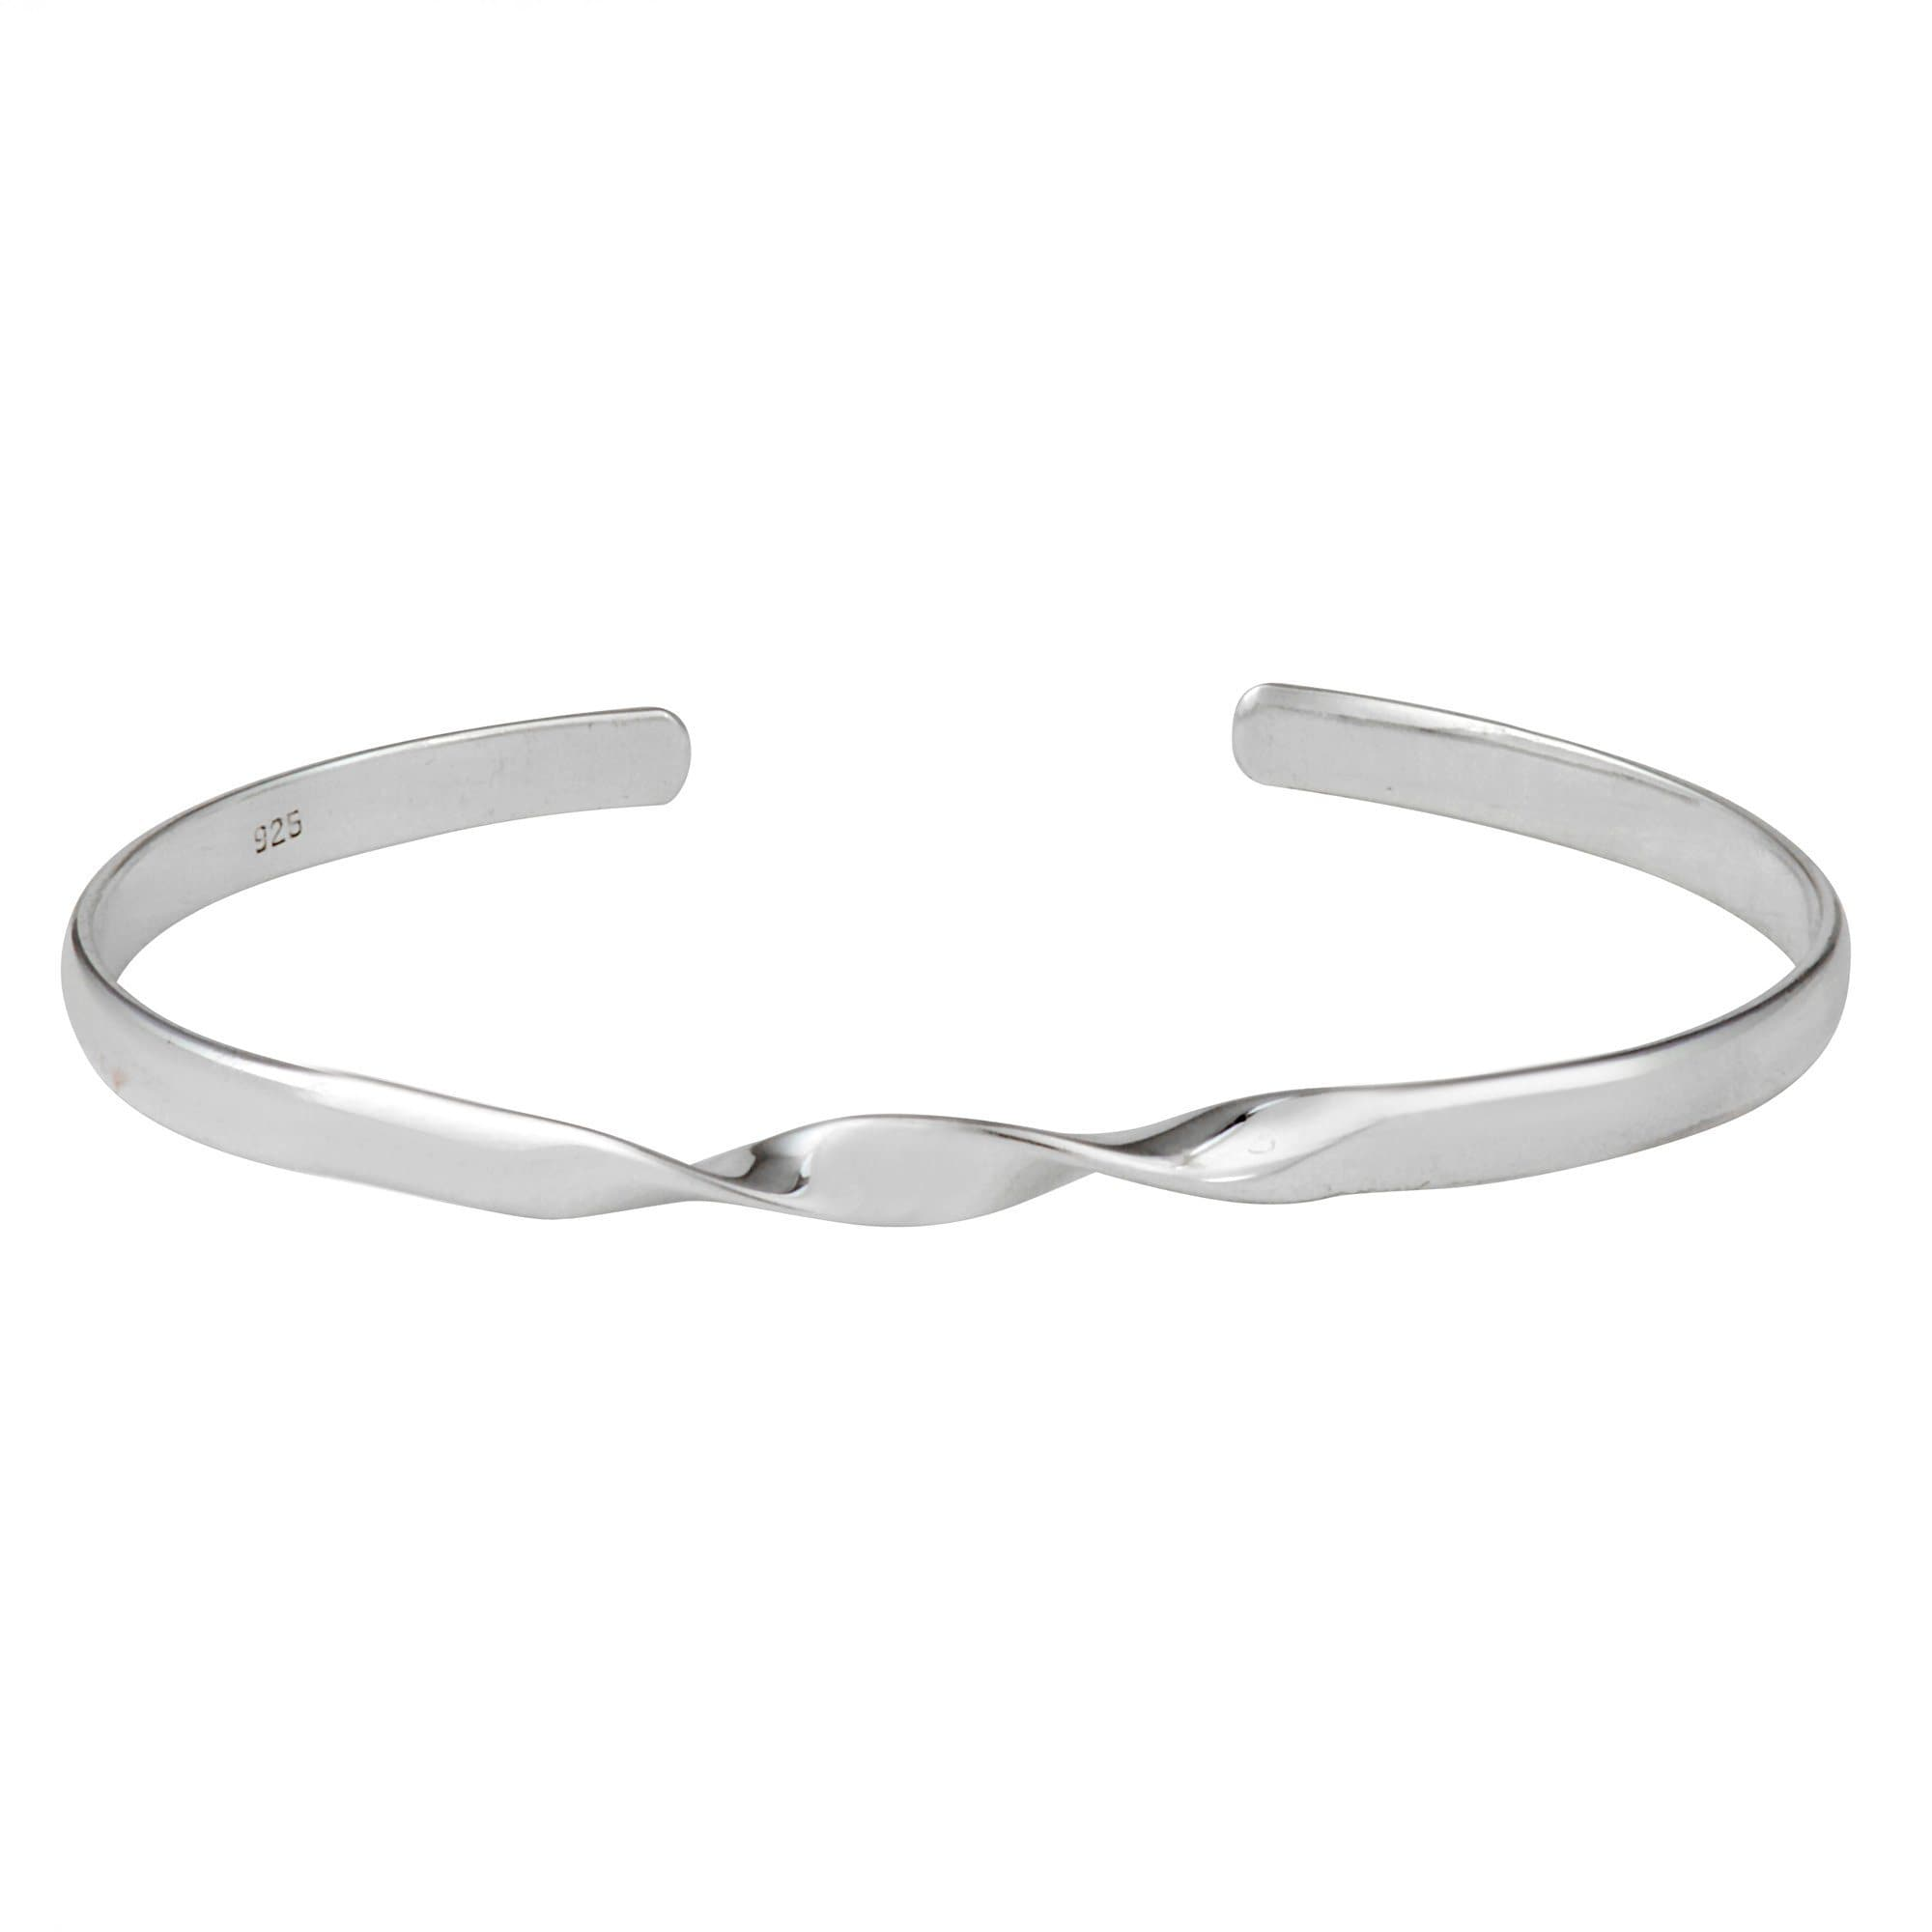 fashionably cm bangle hires bangles plated silver en bracelet essentials rhodium adjustable